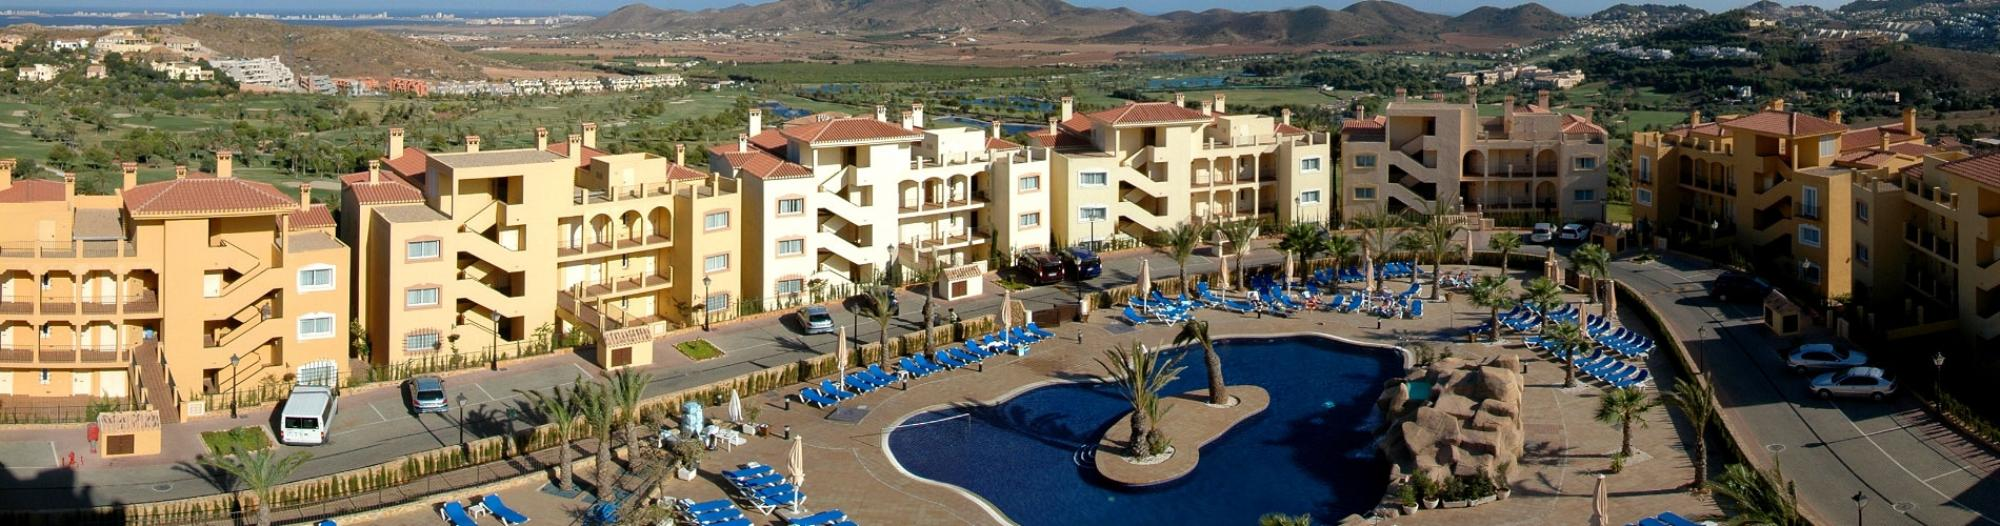 View Las Lomas Village Apartments' picturesque hotel situated in pleasing Costa Blanca.